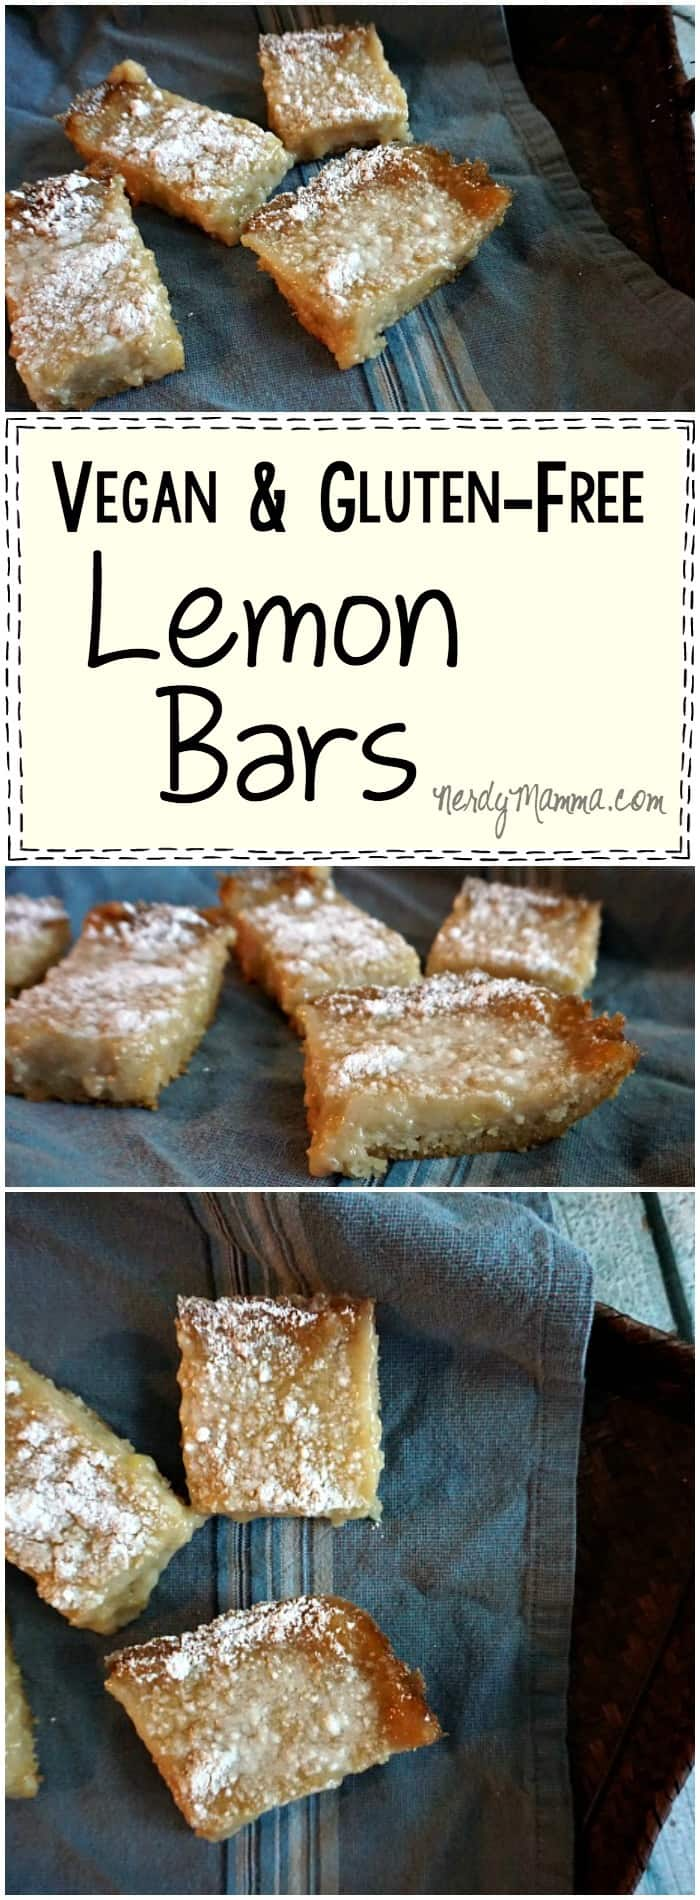 This recipe for vegan & gluten-free lemon bars...OMG. I had no idea these could be made without eggs. Genius. I love it.